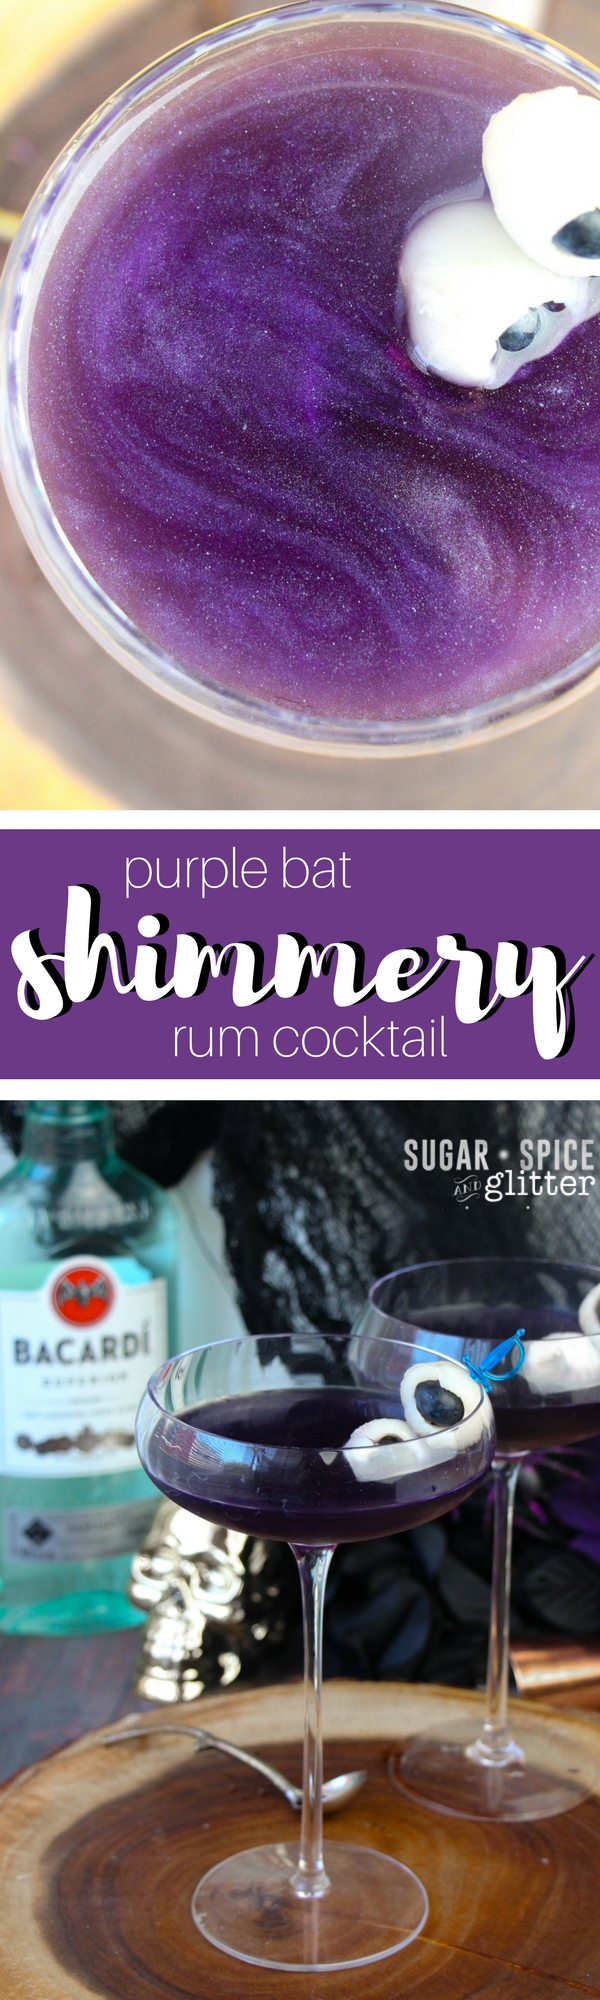 A gorgeous shimmery rum cocktail that is simply mesmerizing. It looks almost like a starry night sky - and for a spooky Halloween touch, add two fruit eyeballs!